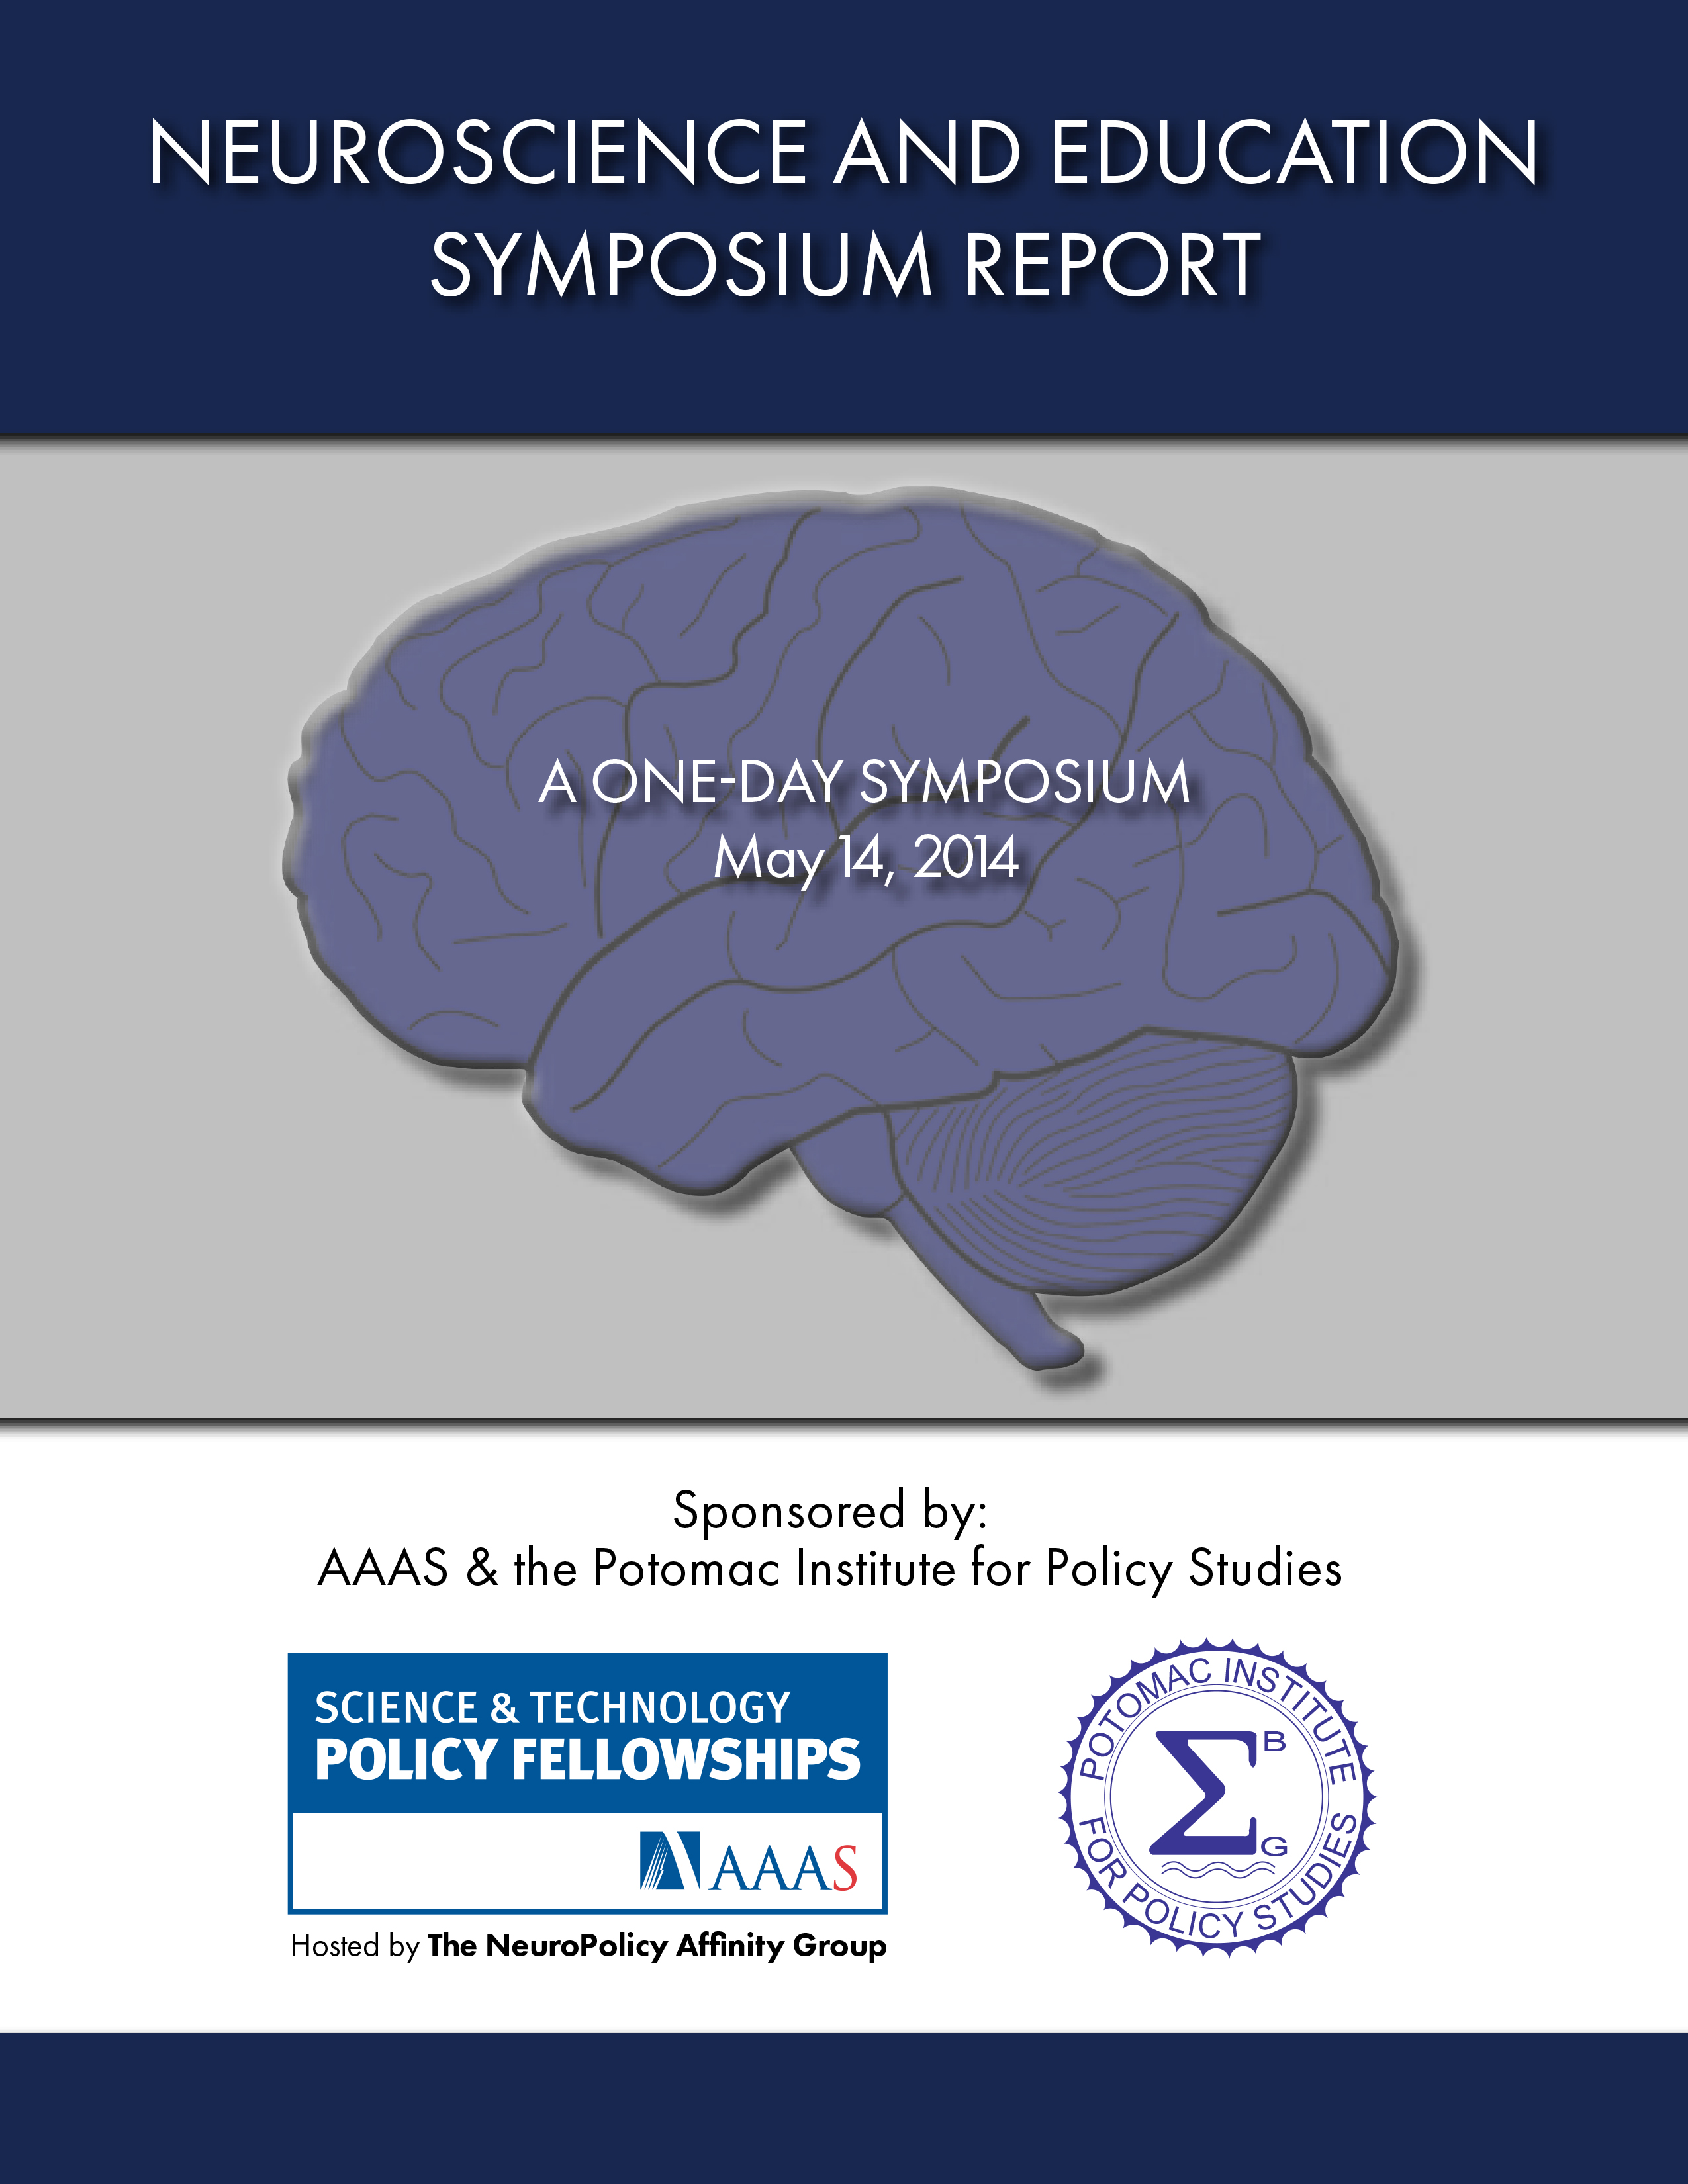 Symposium of Education Neuroscience May 14, 2014 Report